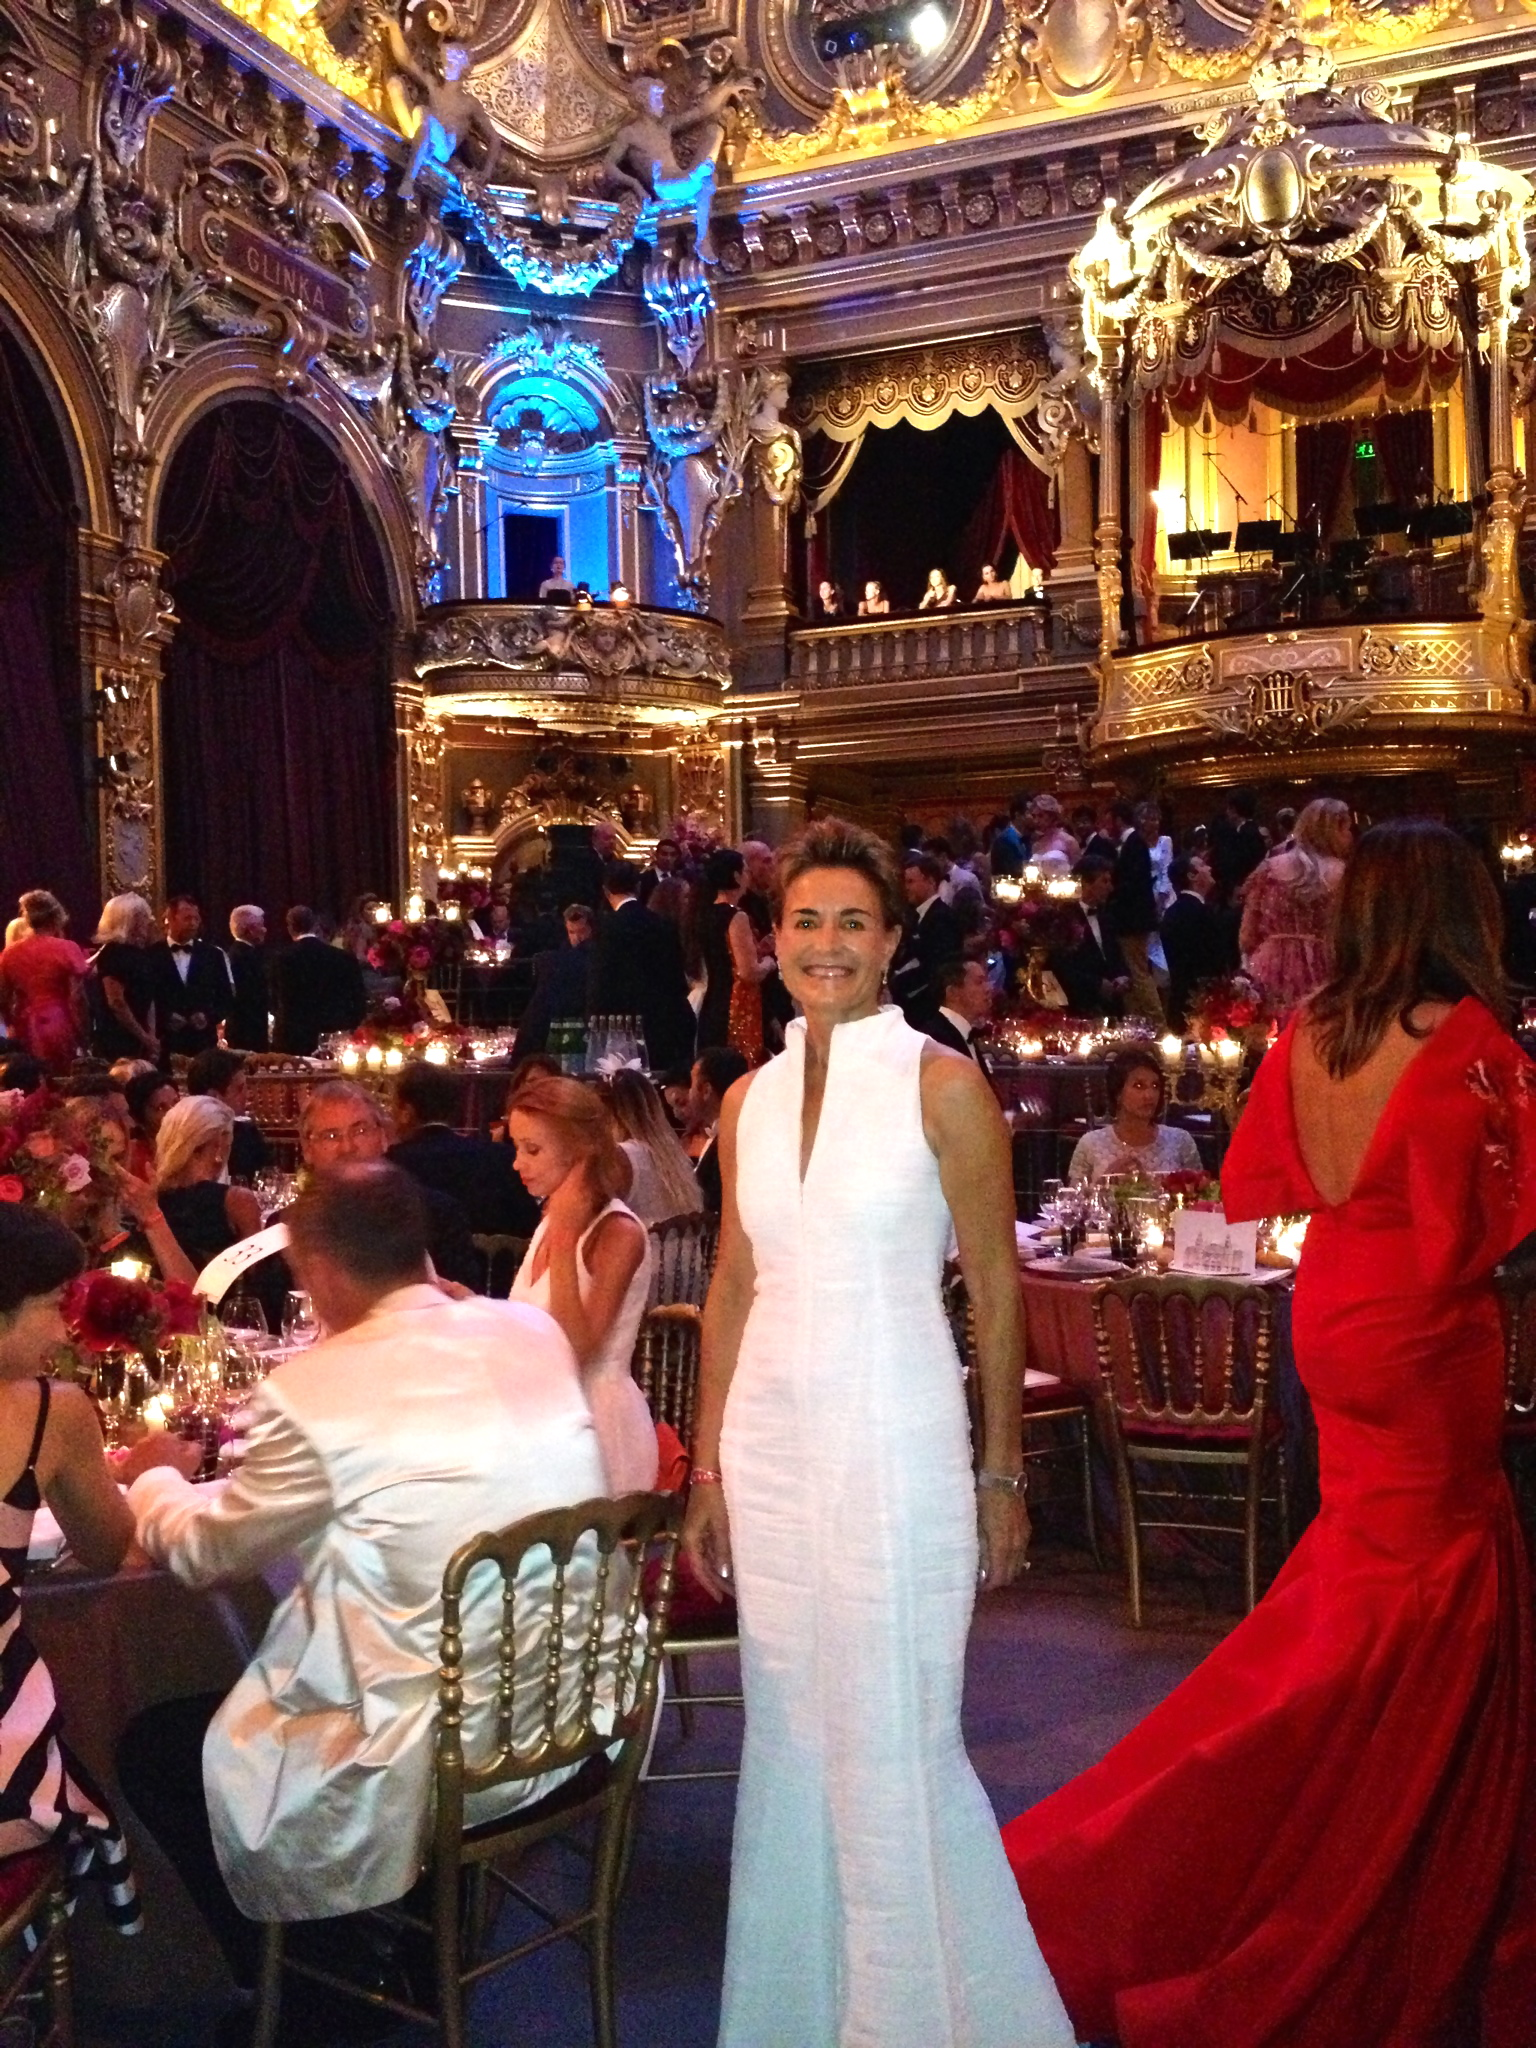 At The Charity Love Ball In Monaco Organized By Natalia